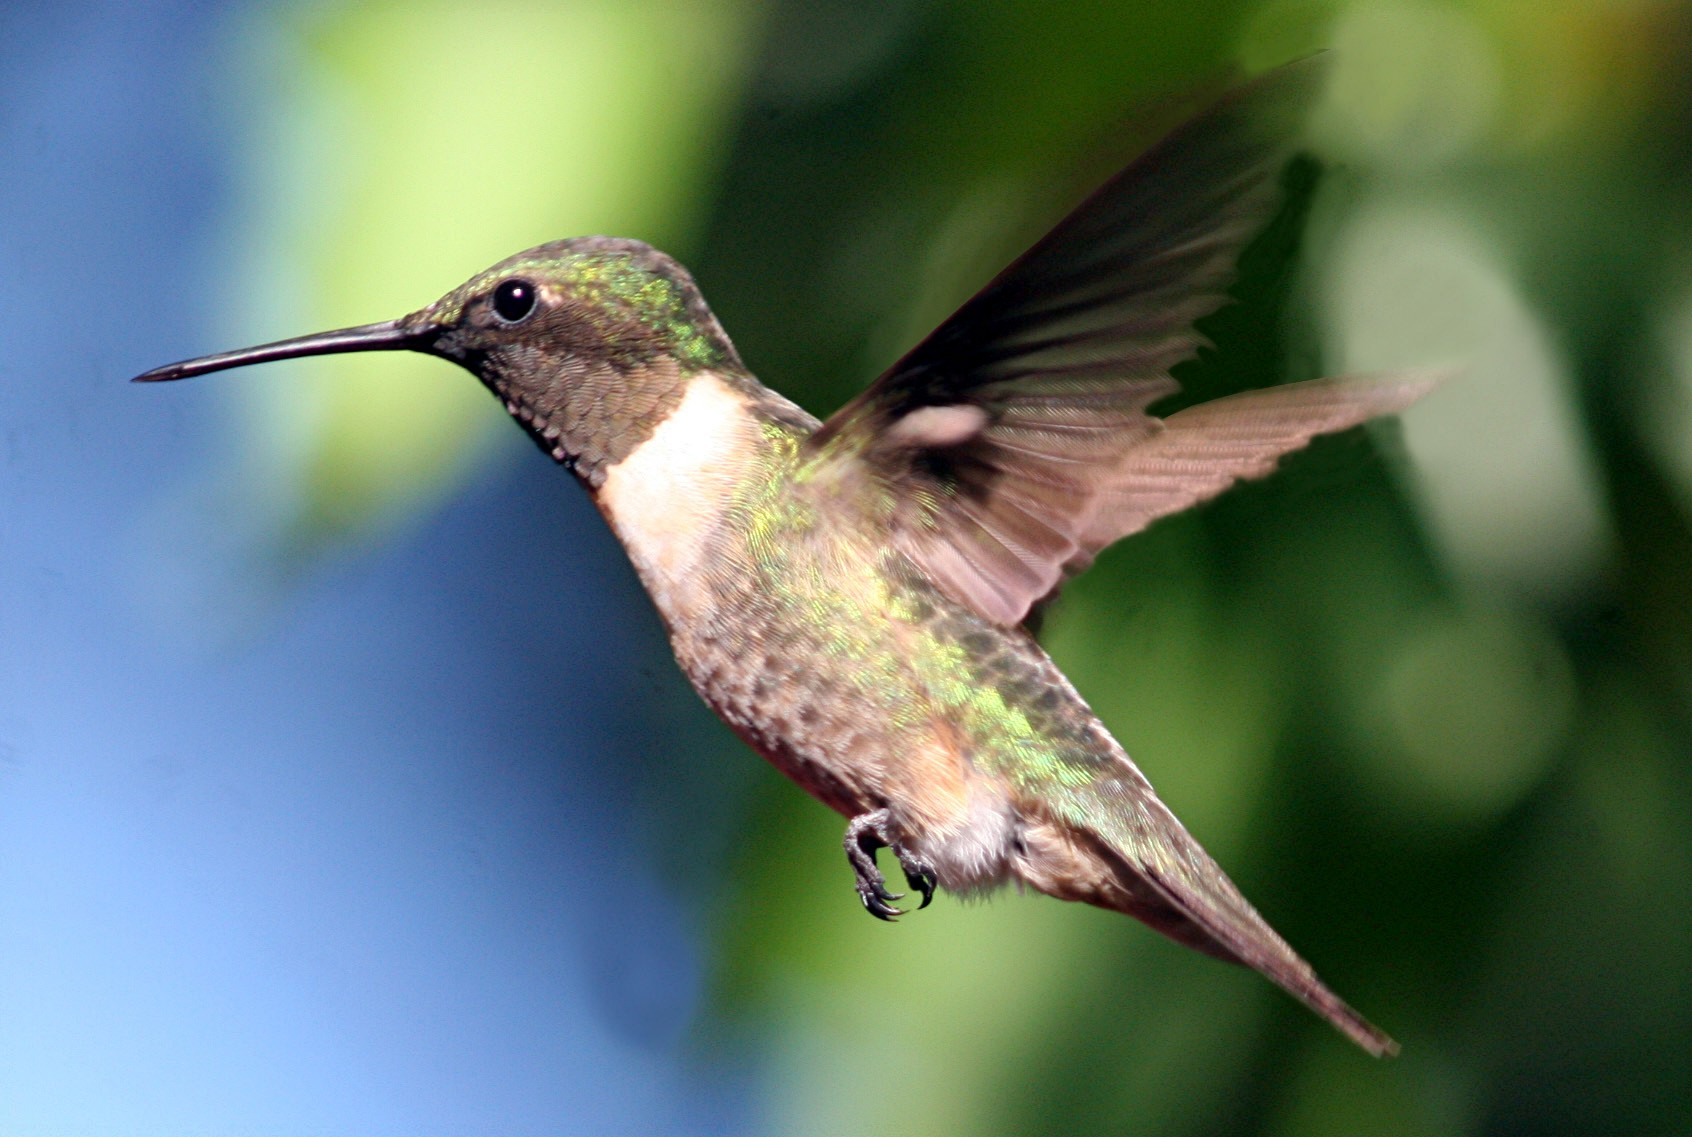 Hummingbird (Photo: Connie Lemperle)